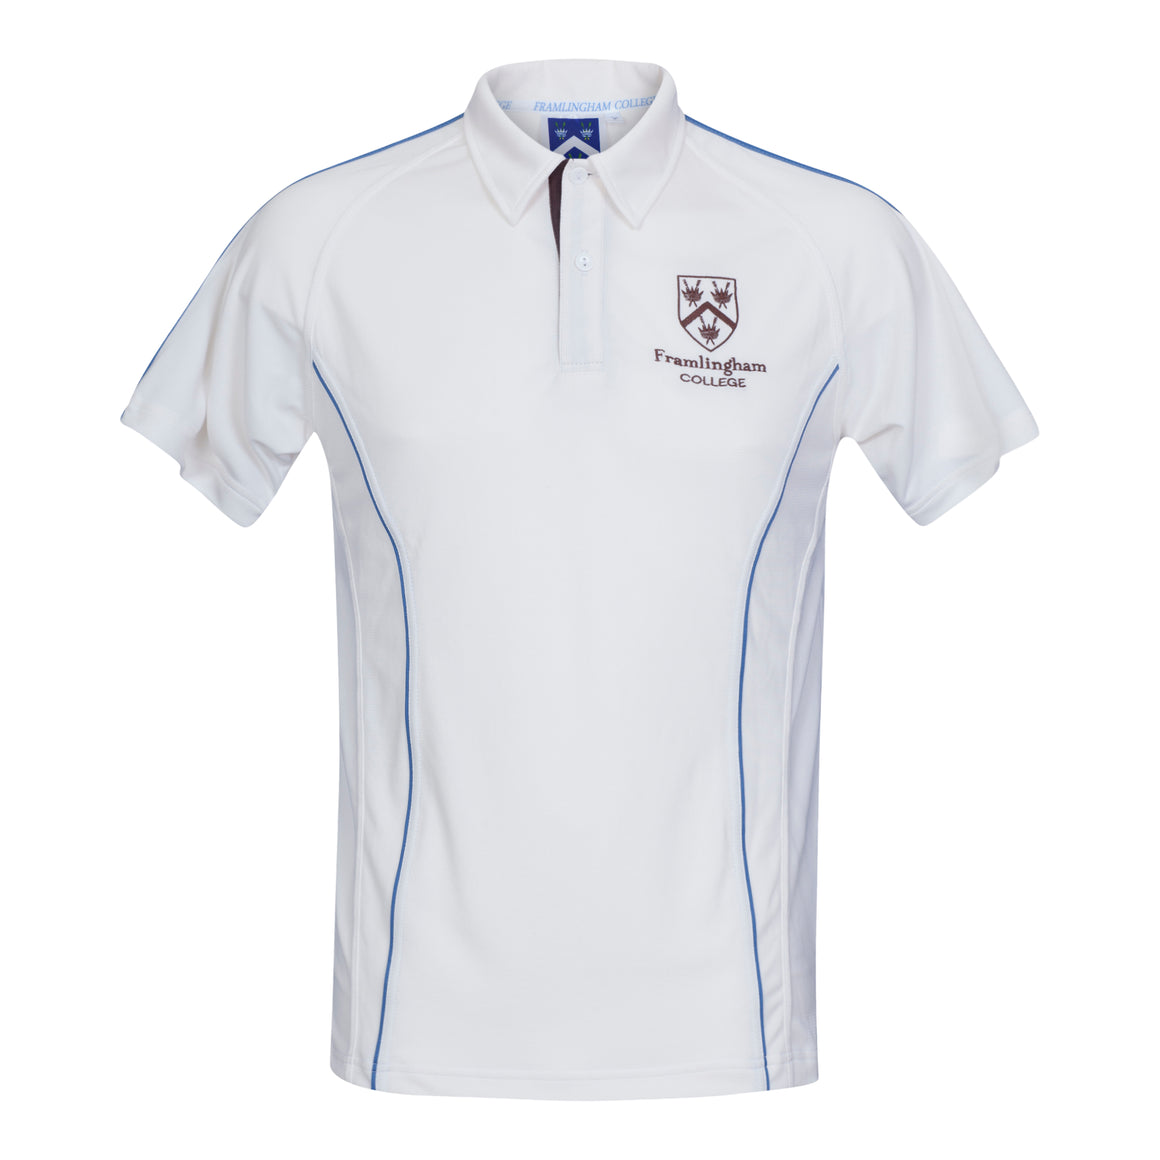 Framlingham College Cricket Shirt